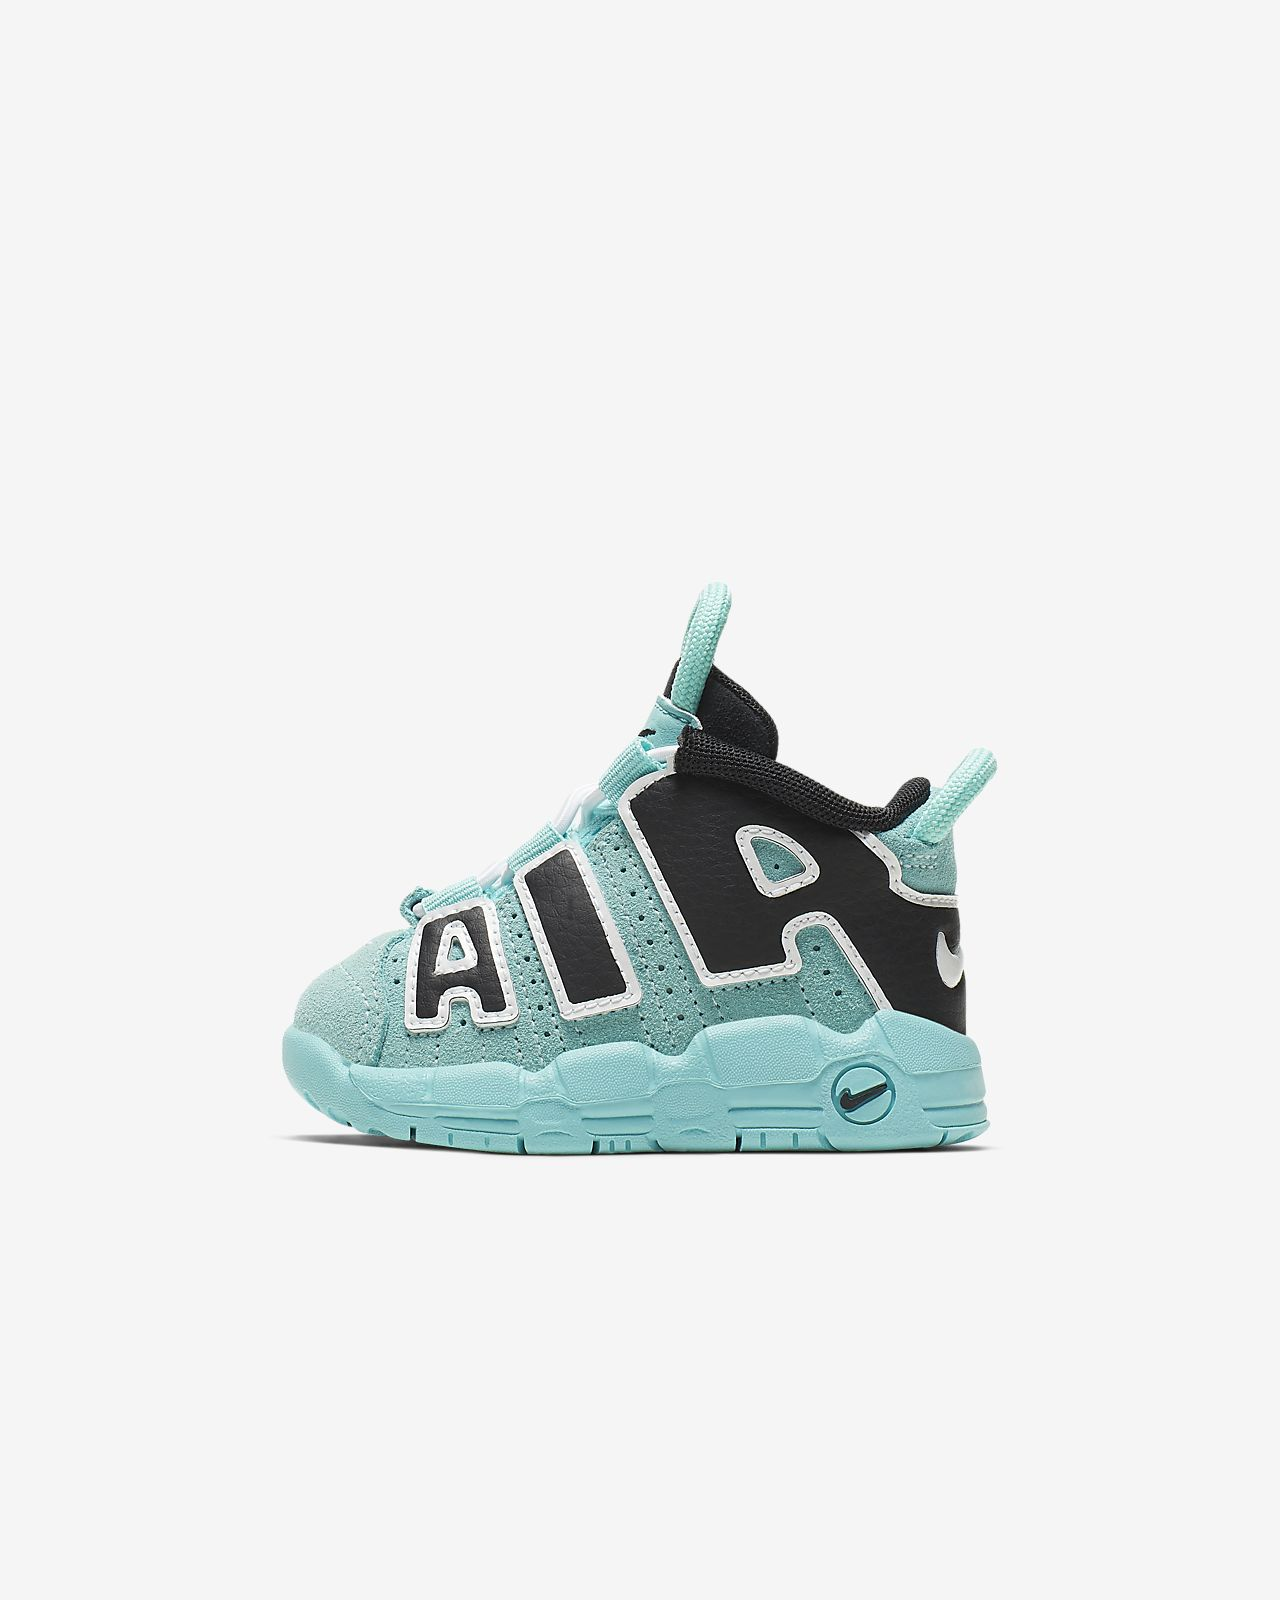 Nike Air More Uptempo Baby/Toddler Shoe